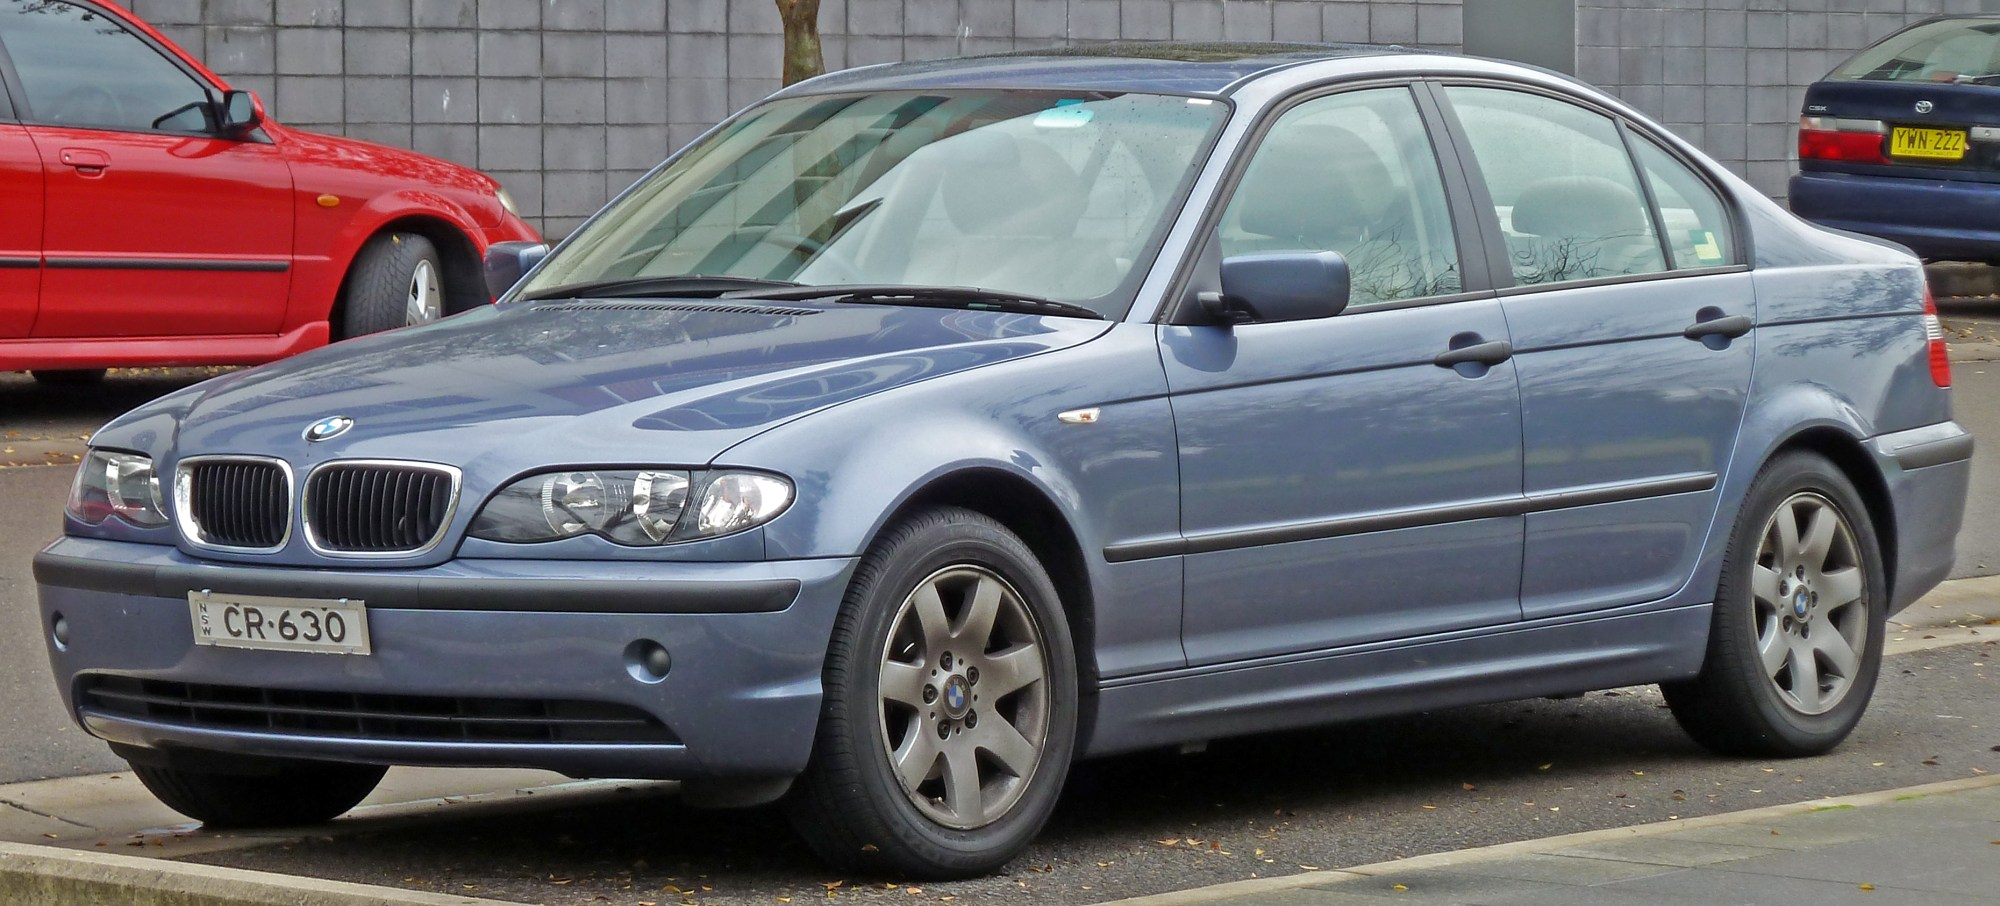 hight resolution of facelift sedan